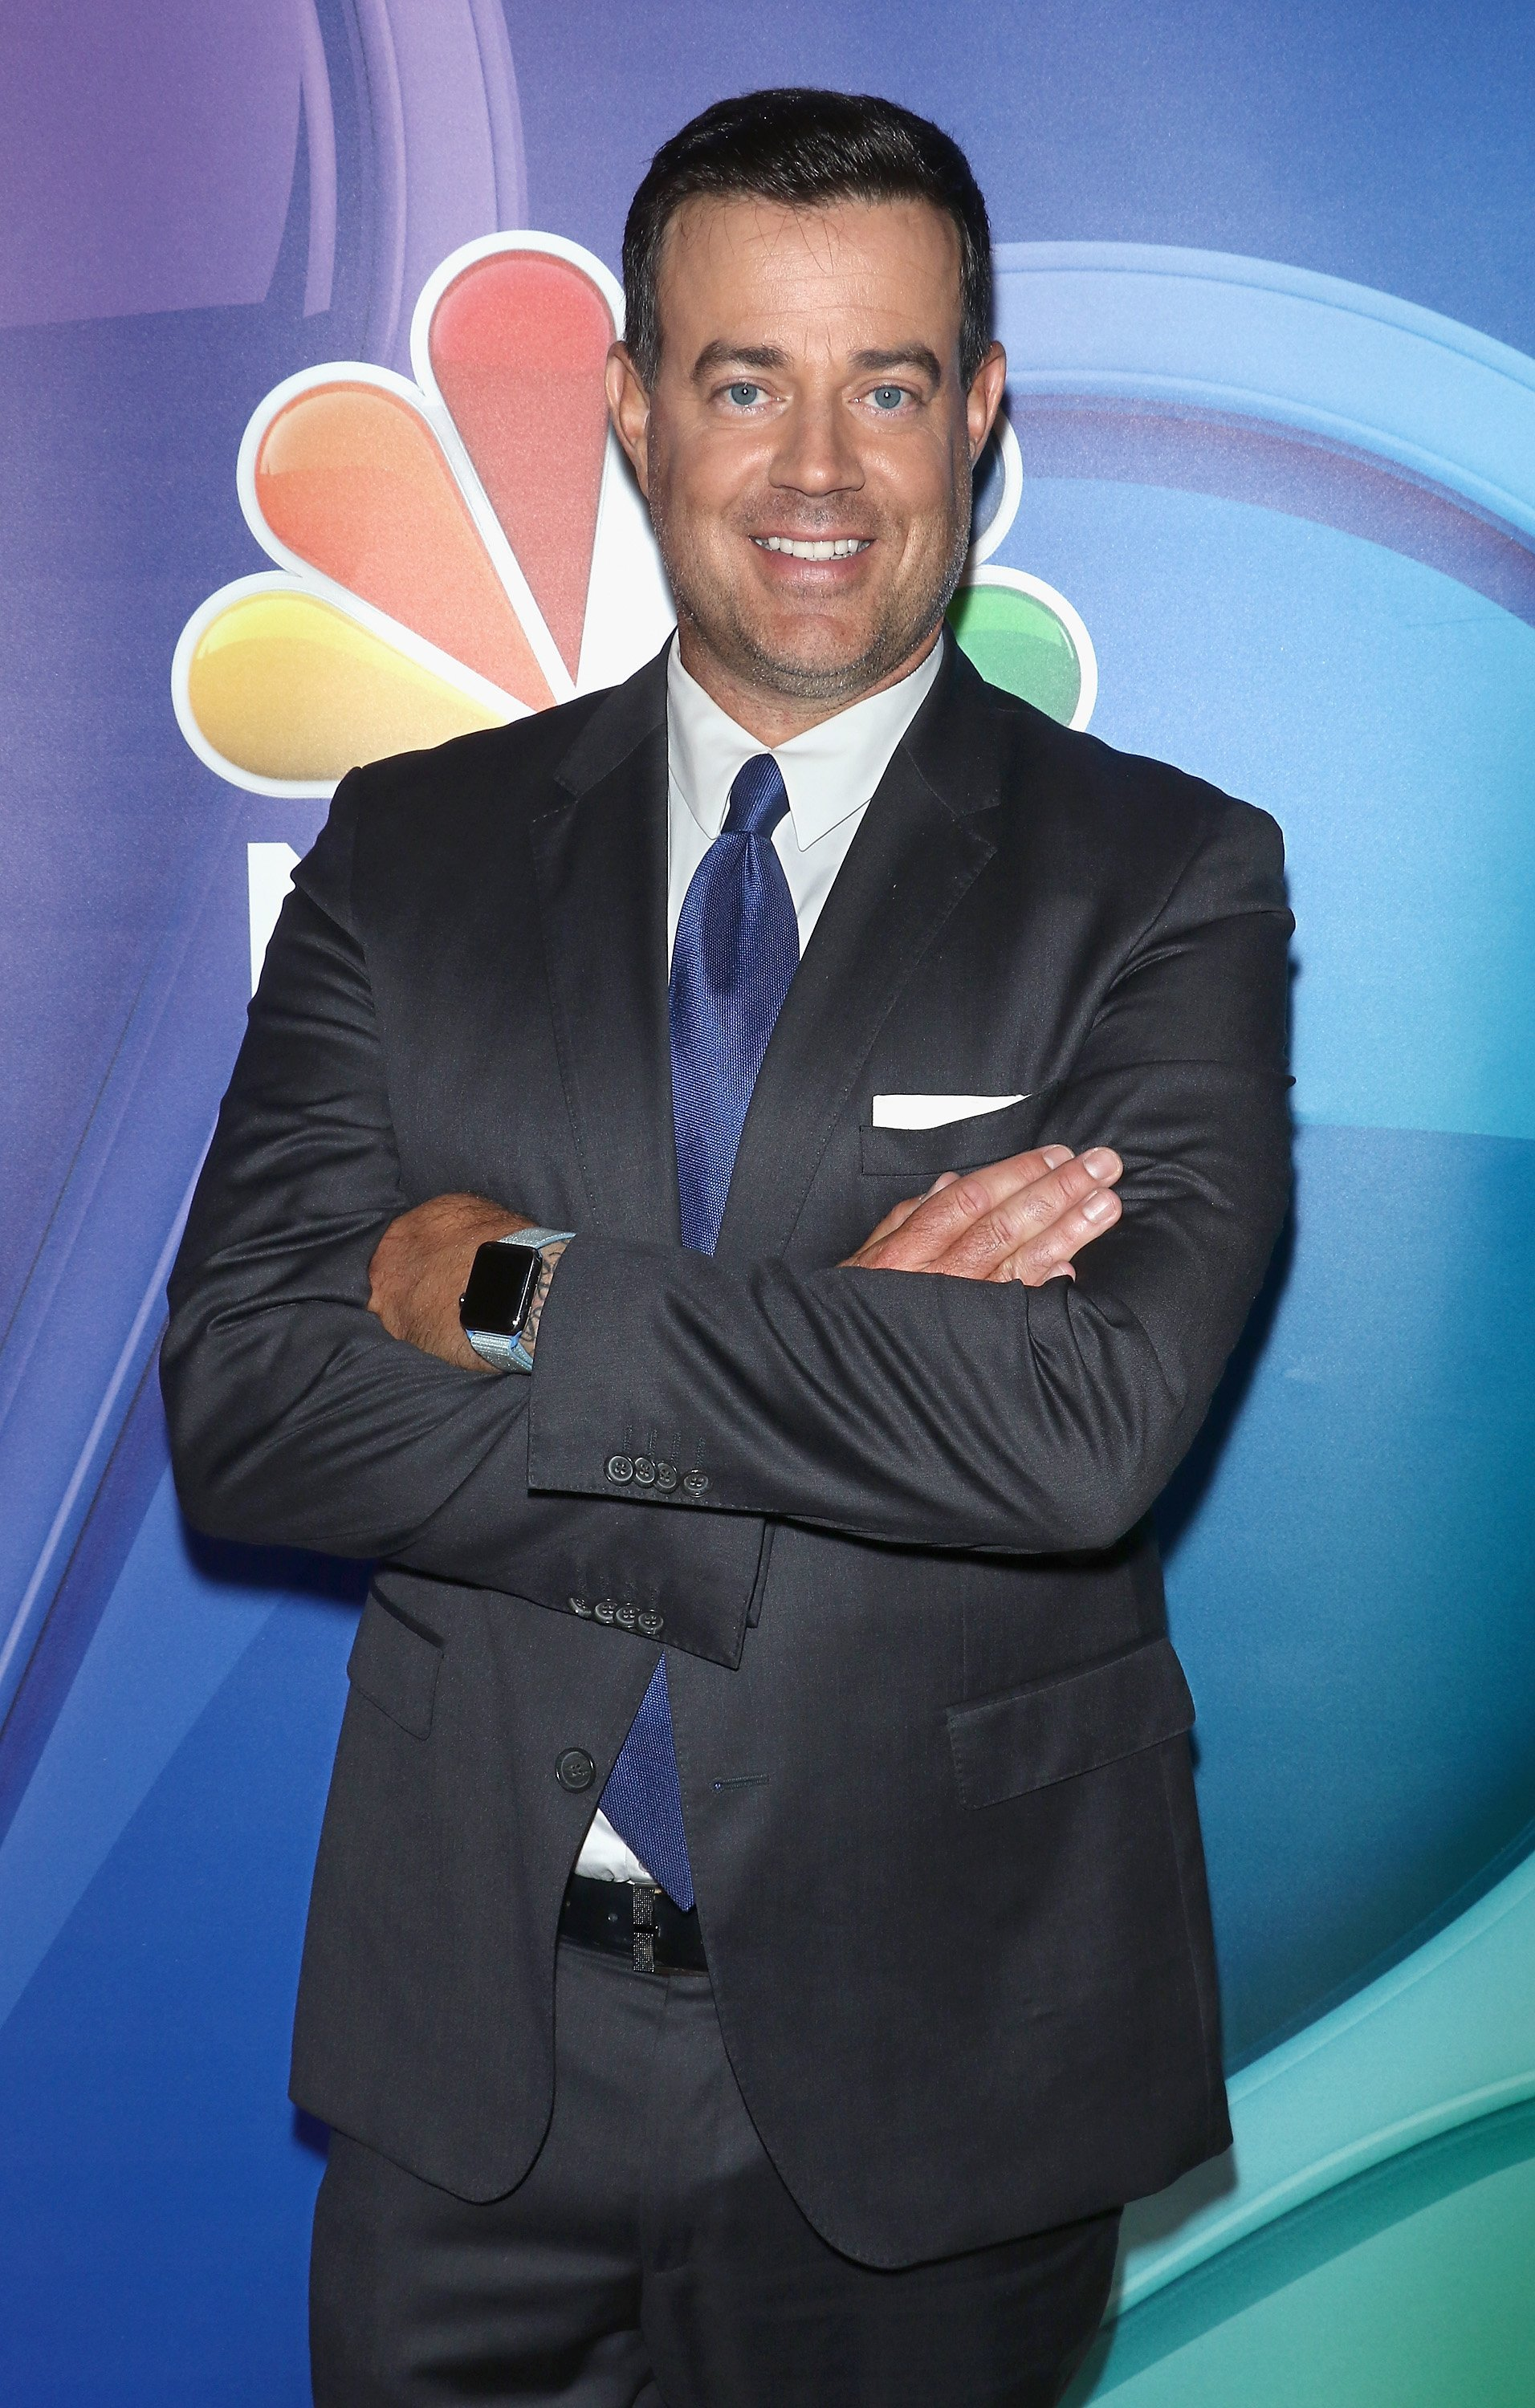 Carson Daly attends the NBC Fall New York Junket on September 6, 2018 | Photo: Getty Images